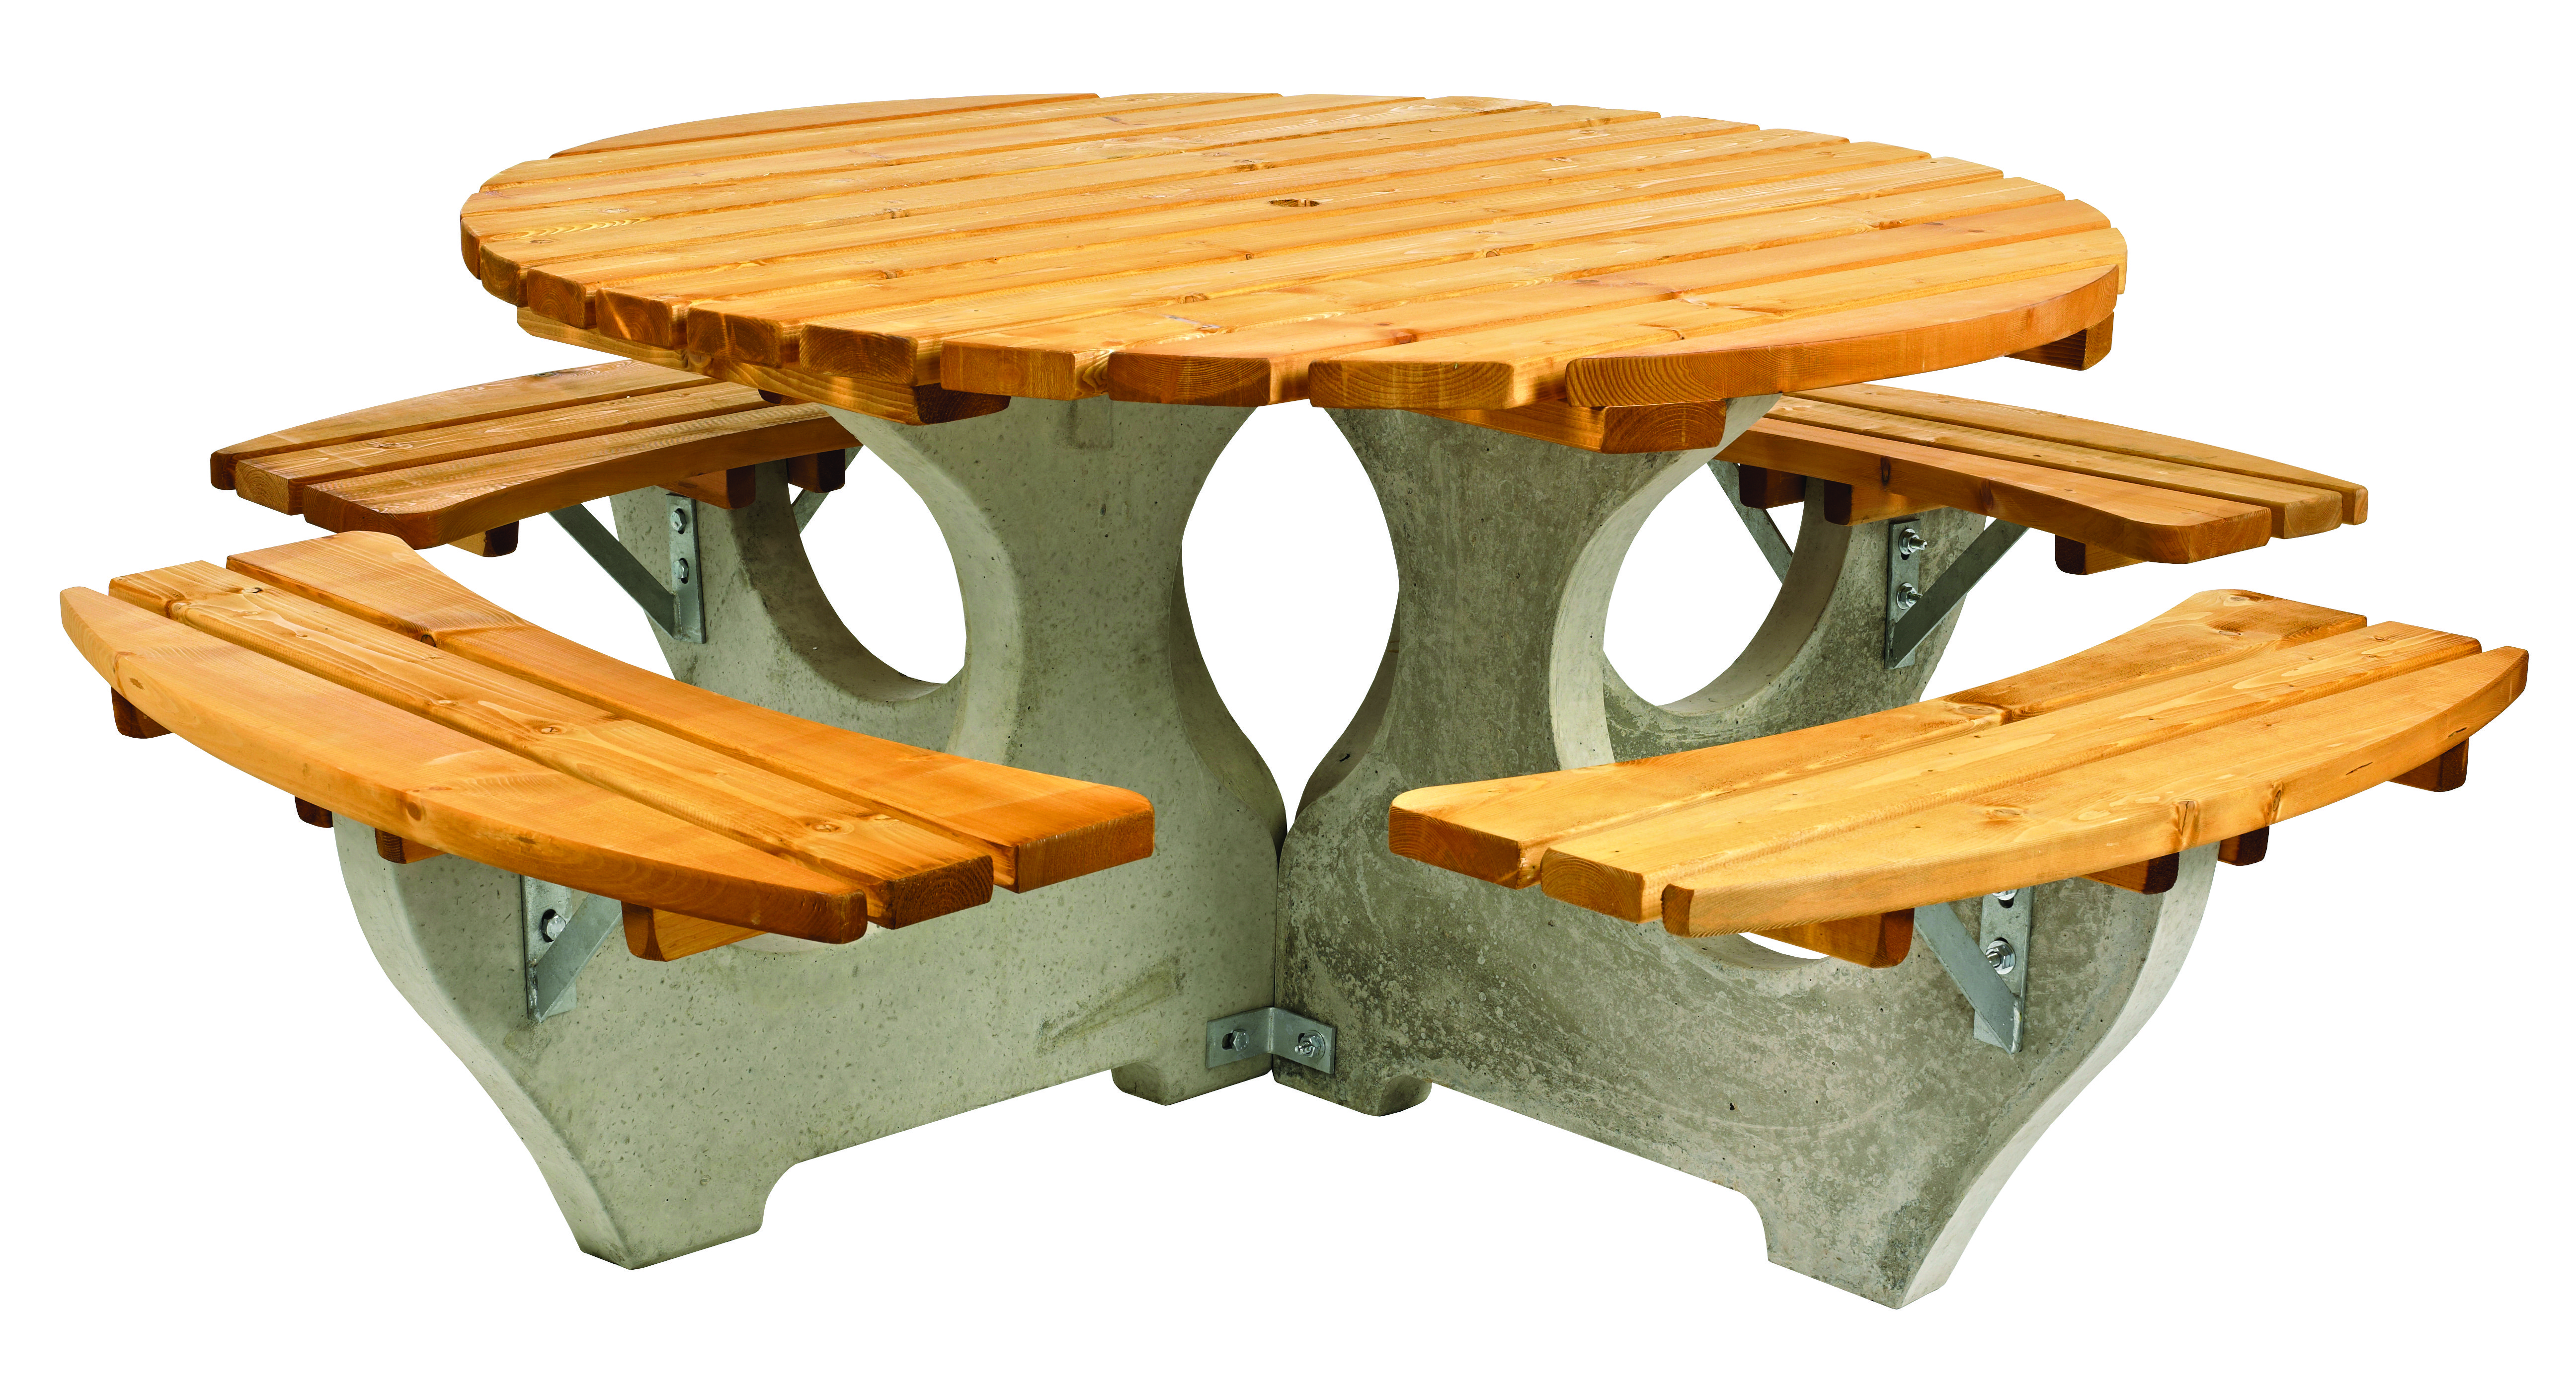 Concrete Round Picnic Table Simply Wood - Round picnic table with benches